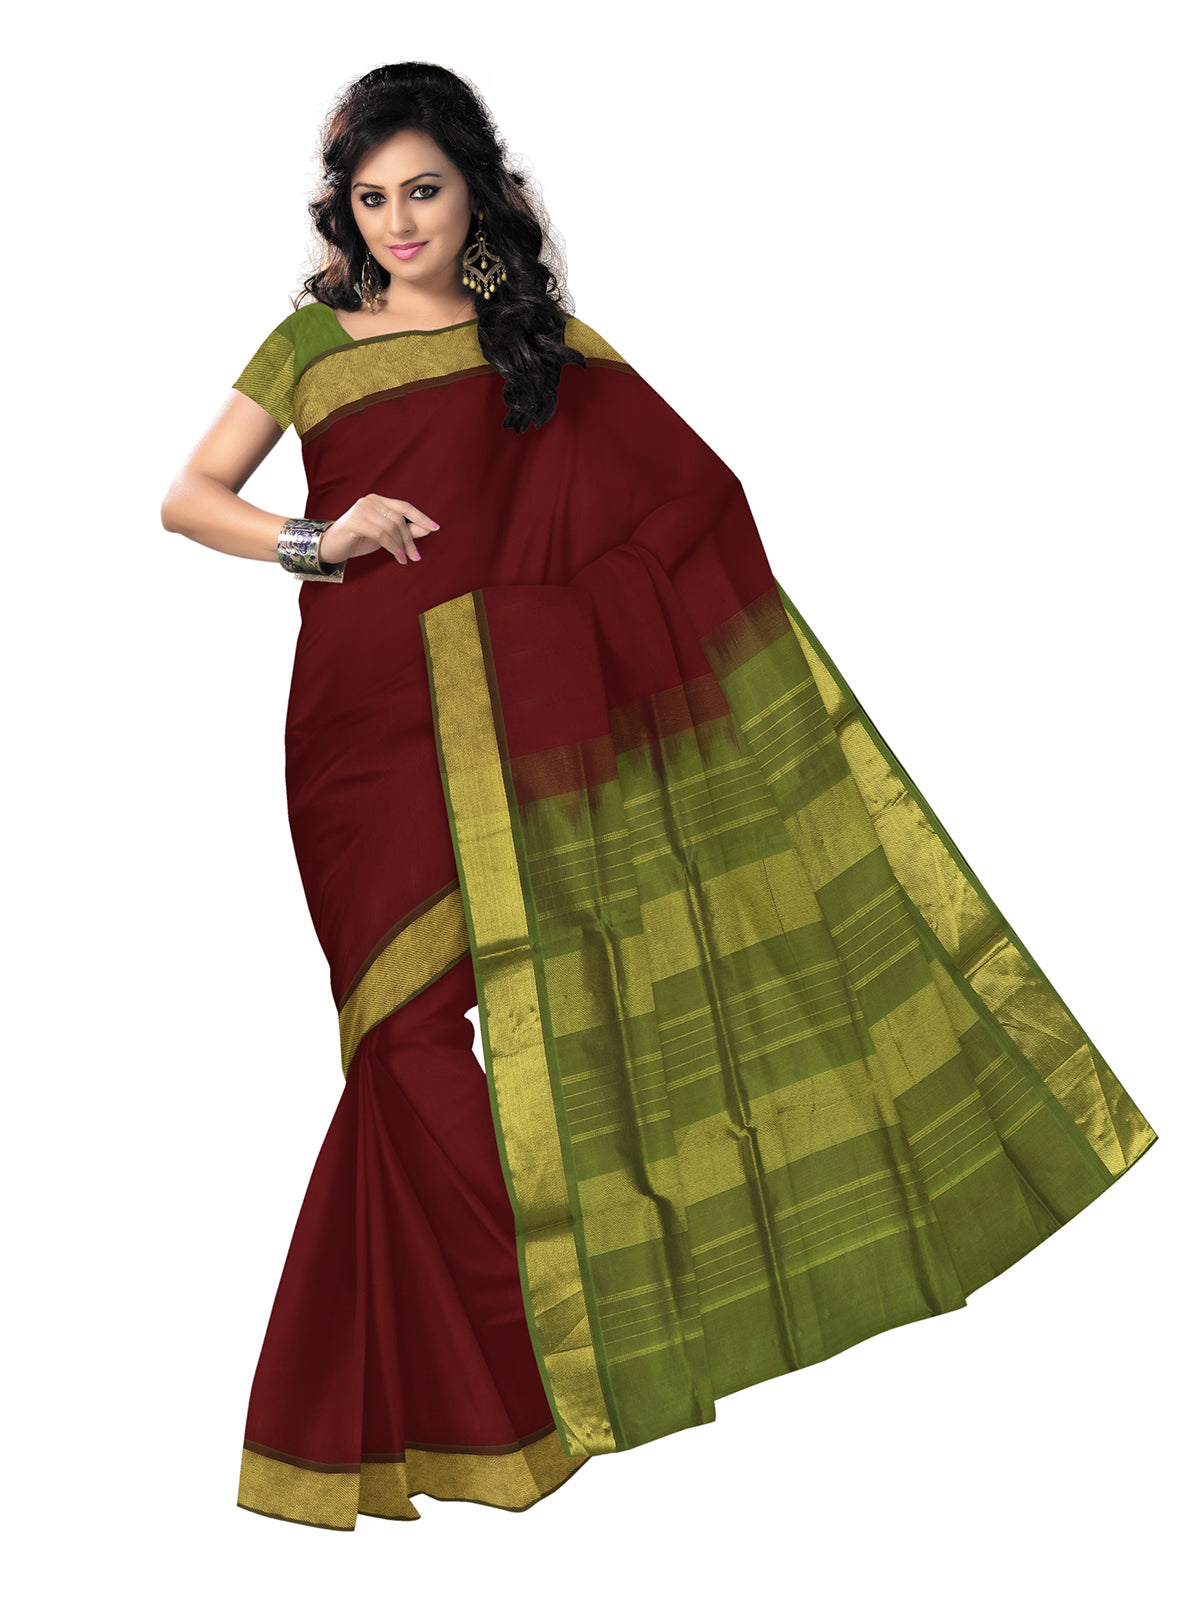 silk cotton saree -Maroon and Mehandi Green with simple zari border